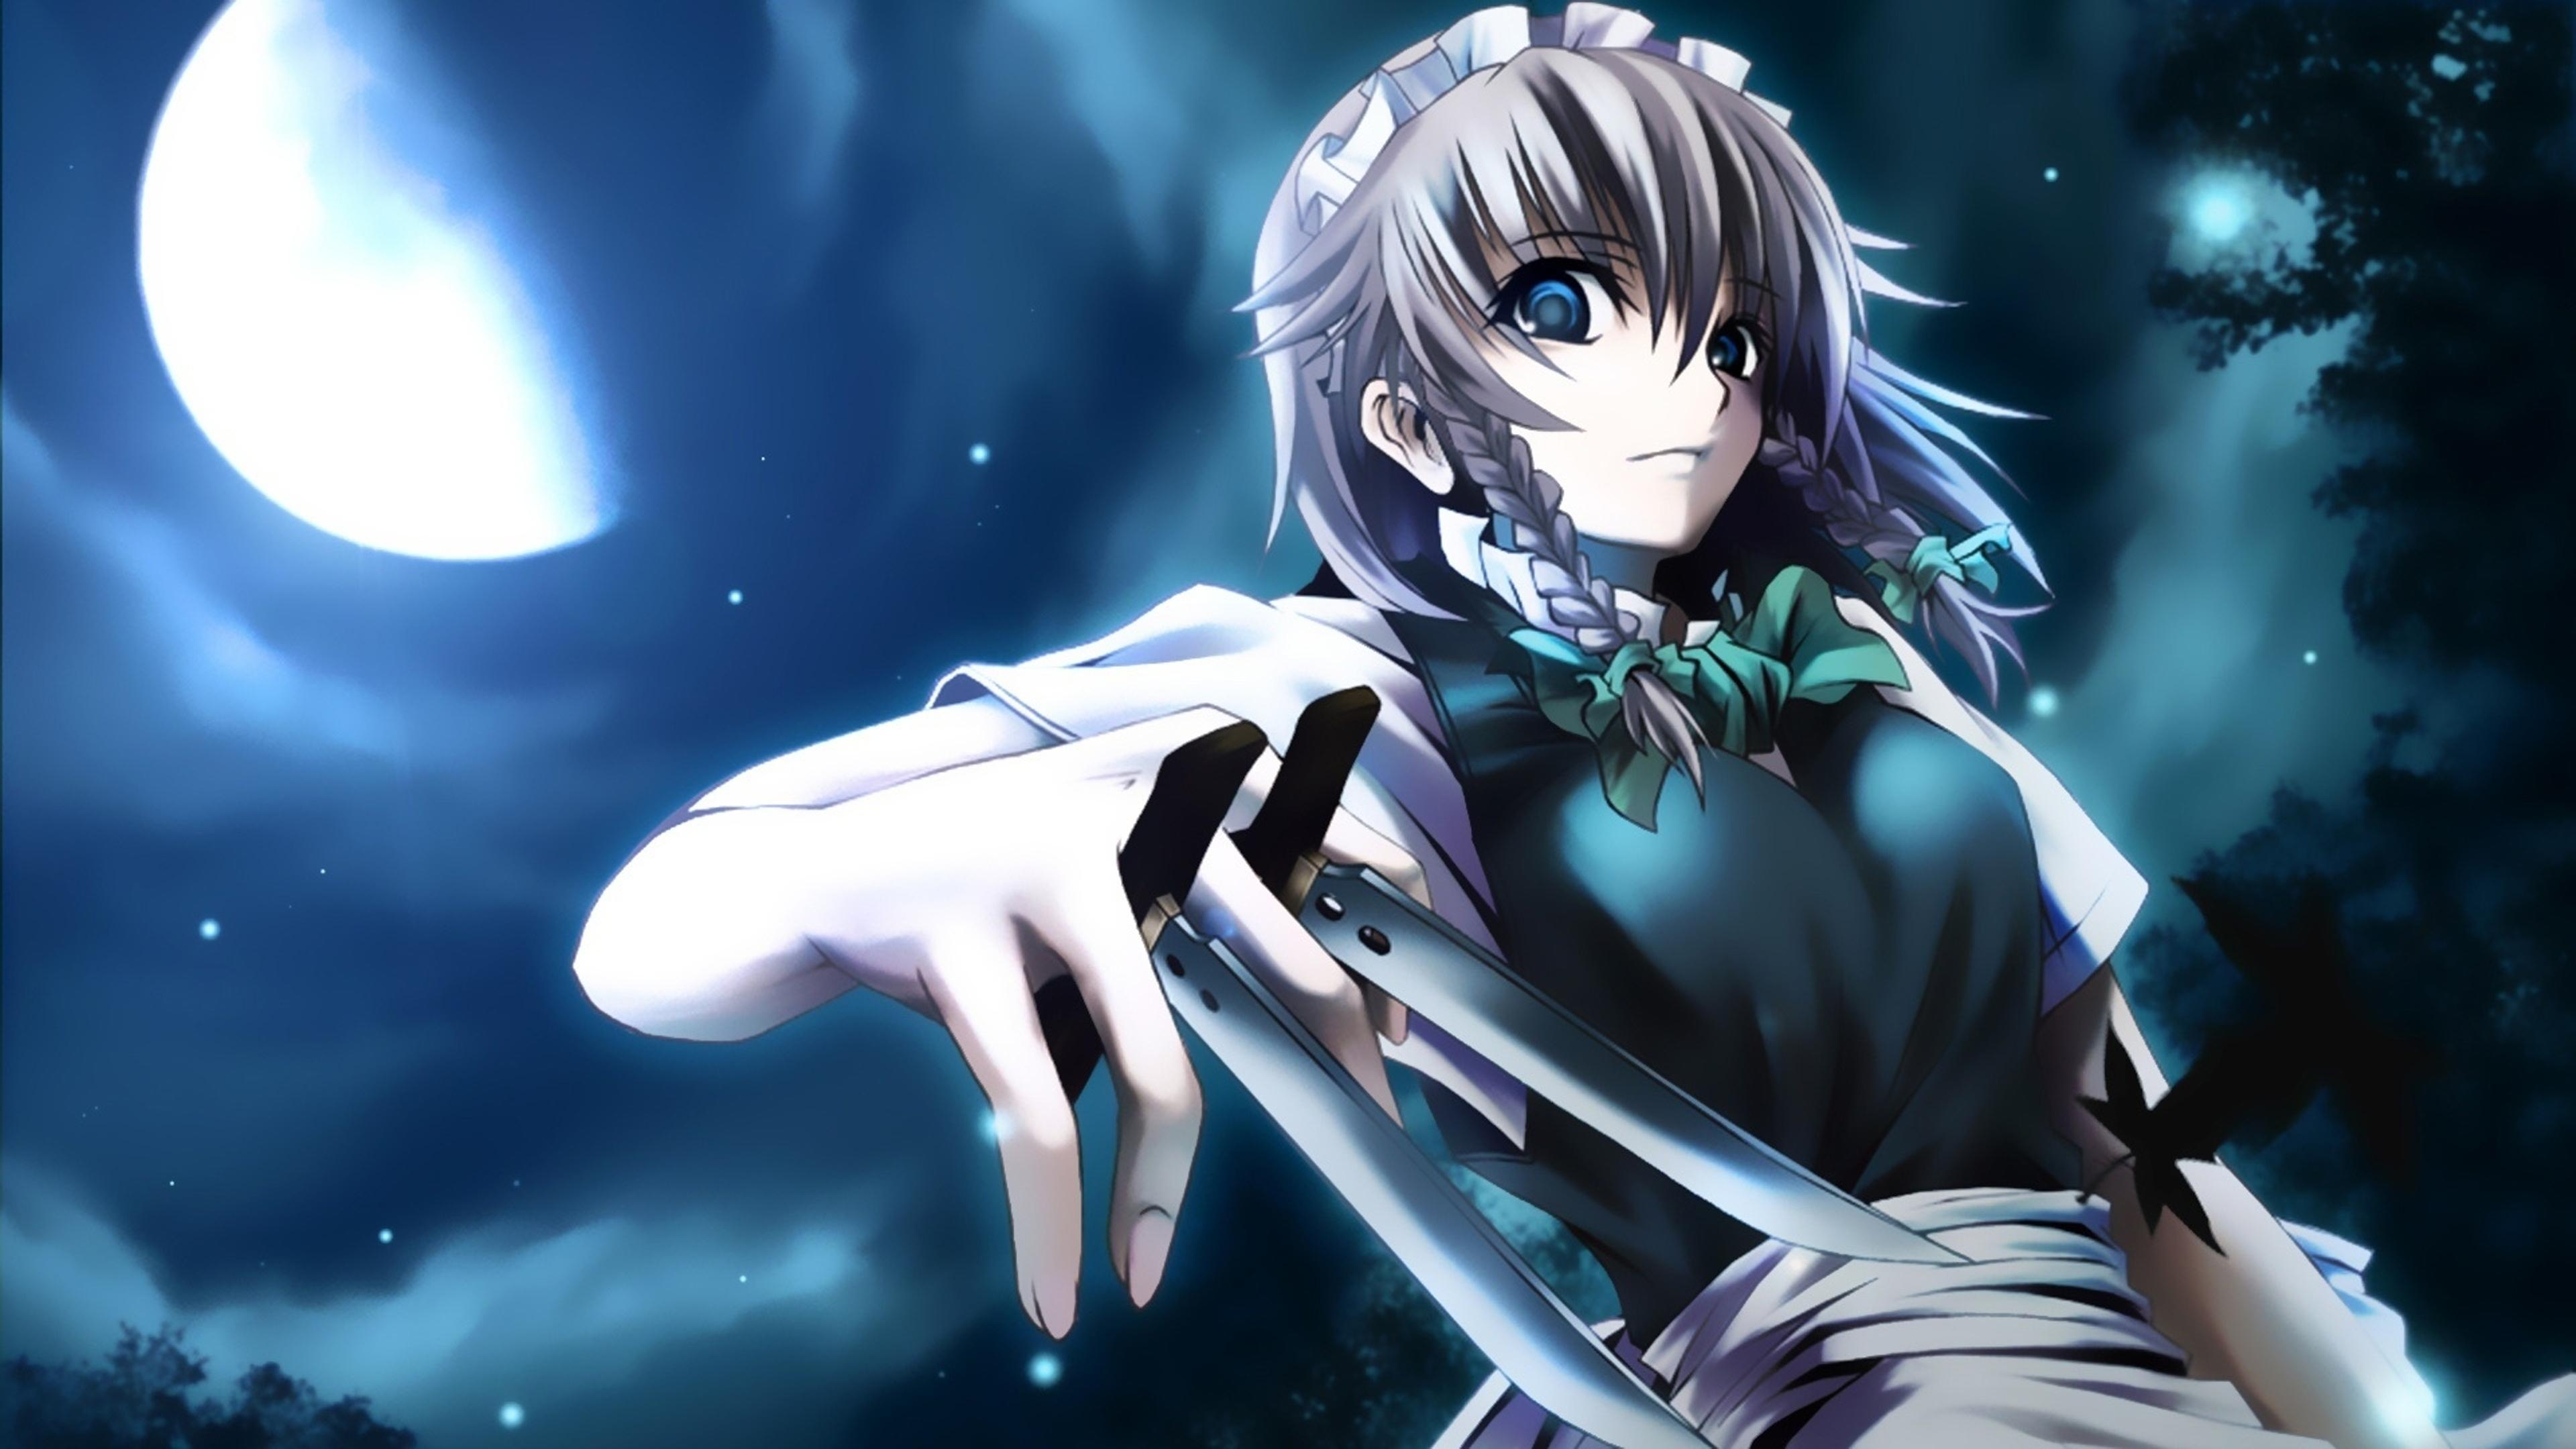 an anime girl with hidden finger blades wallpaper download 3840x2160